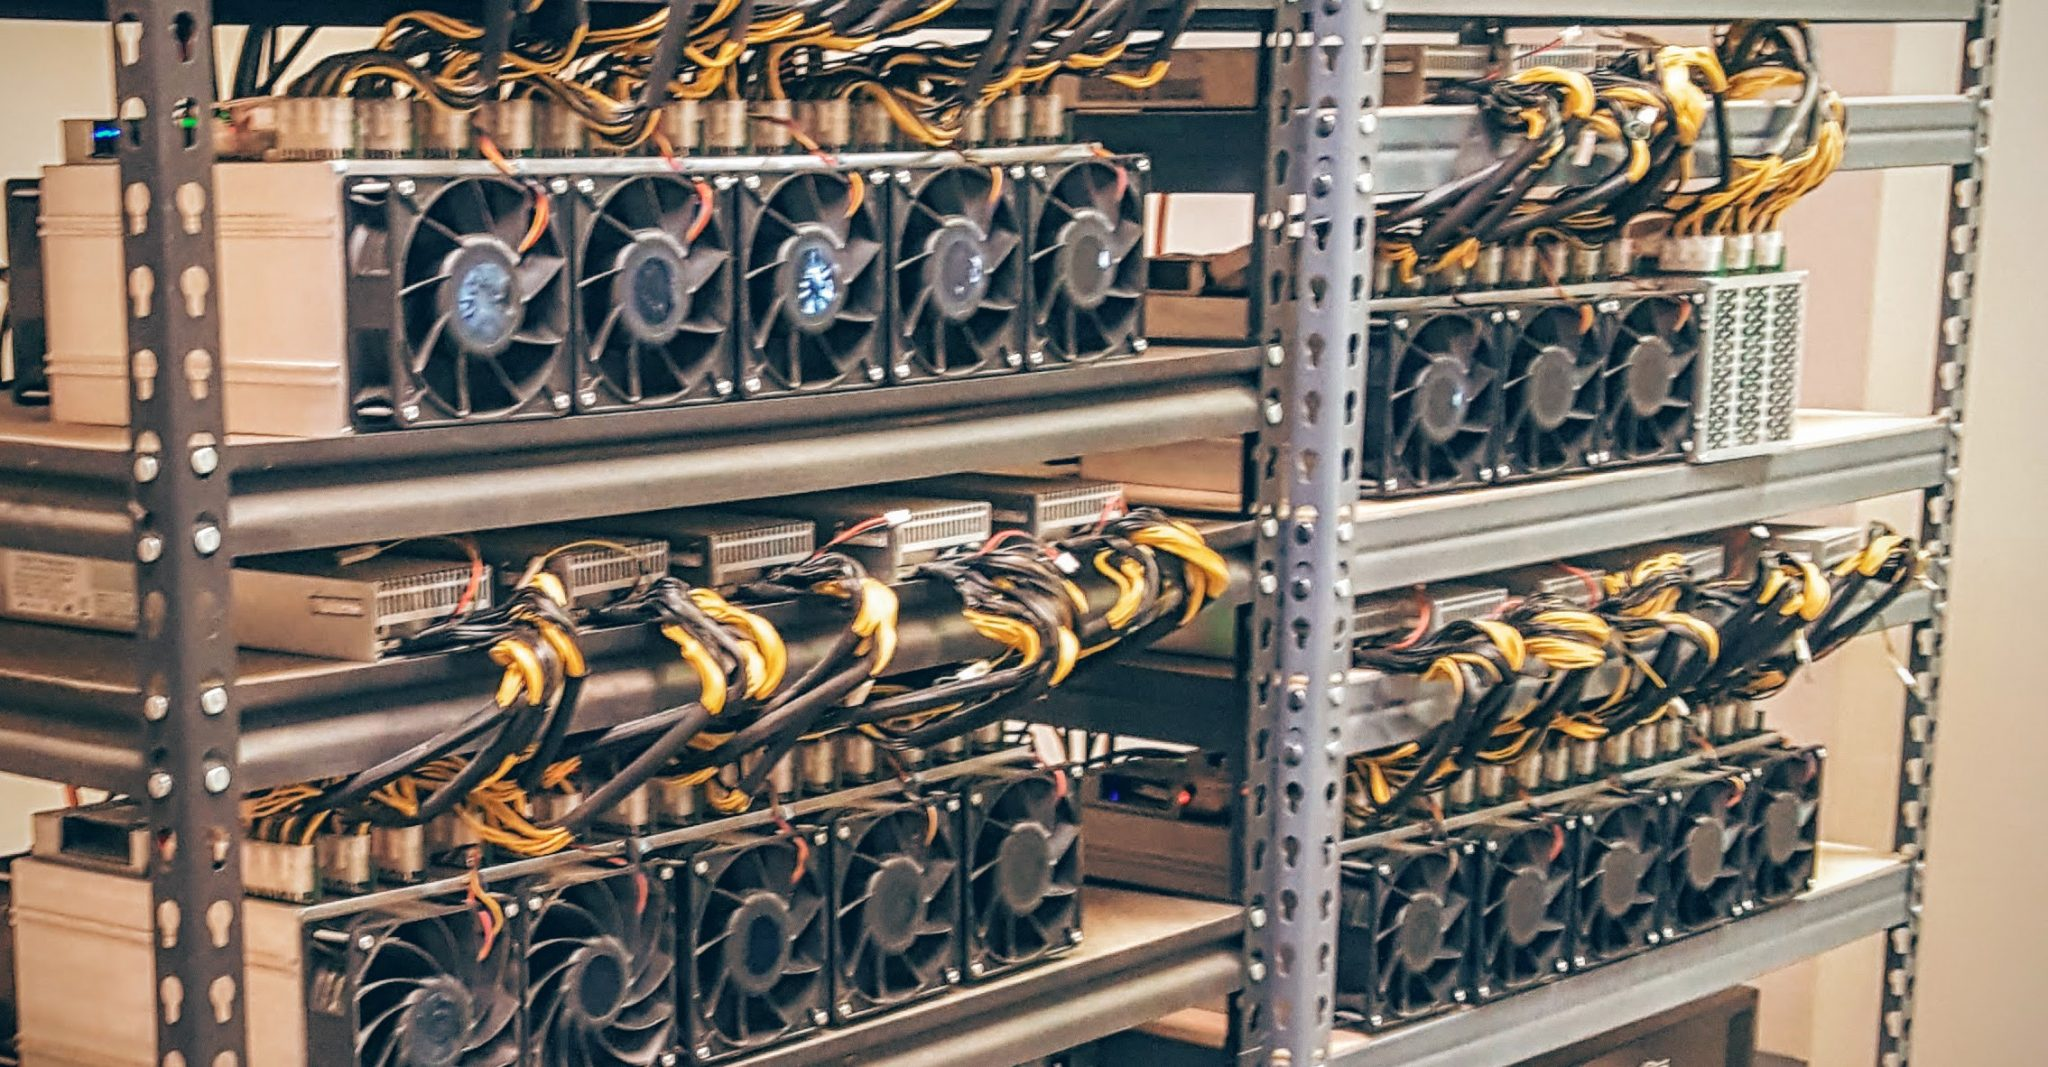 planning your bitcoin mining operation